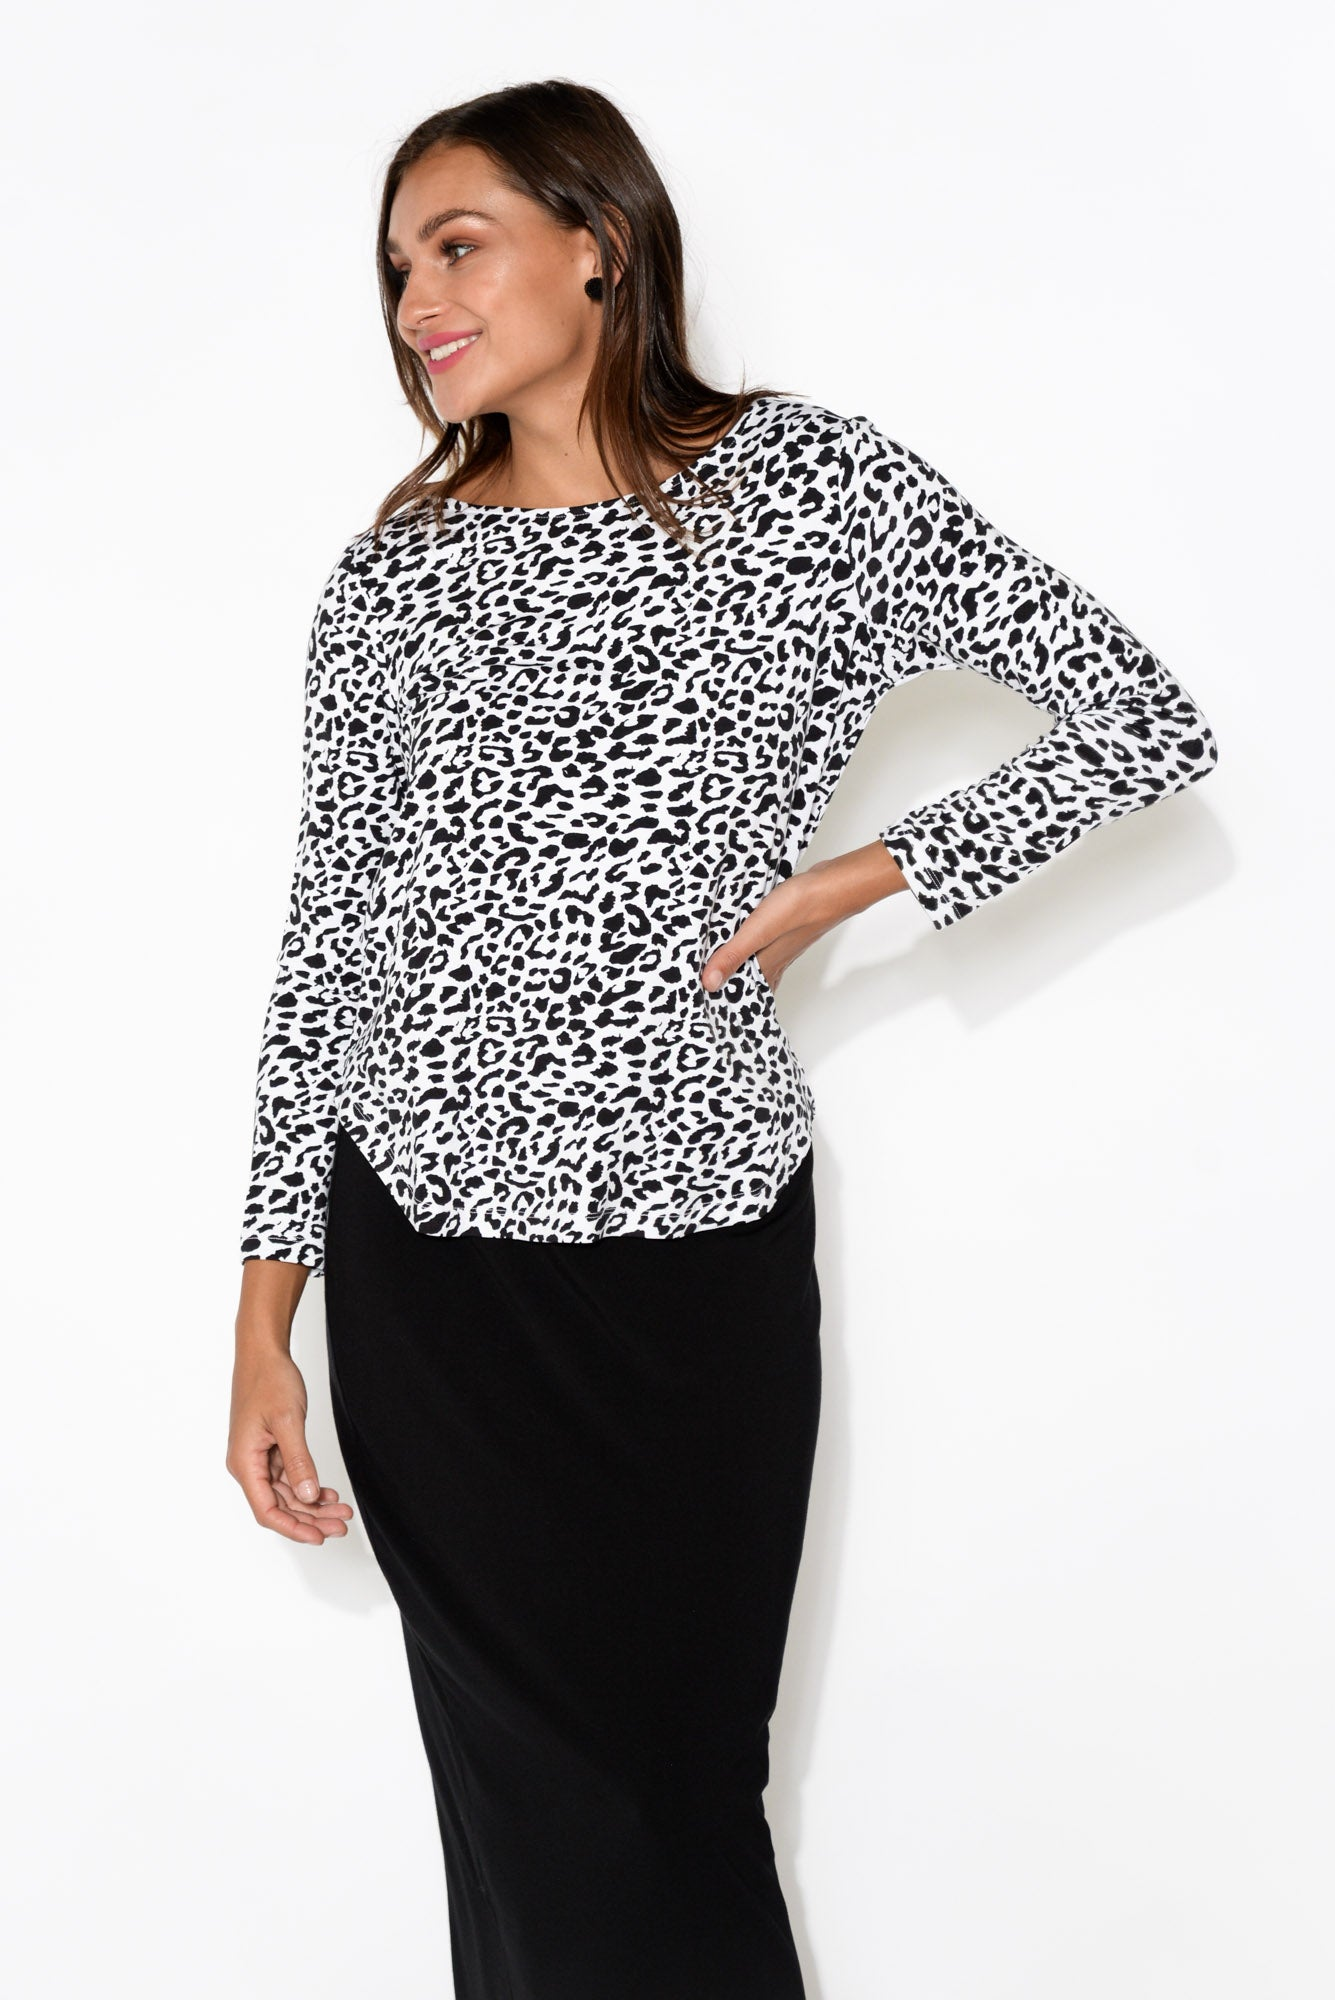 Adele Black Leopard Long Sleeve Bamboo Tee